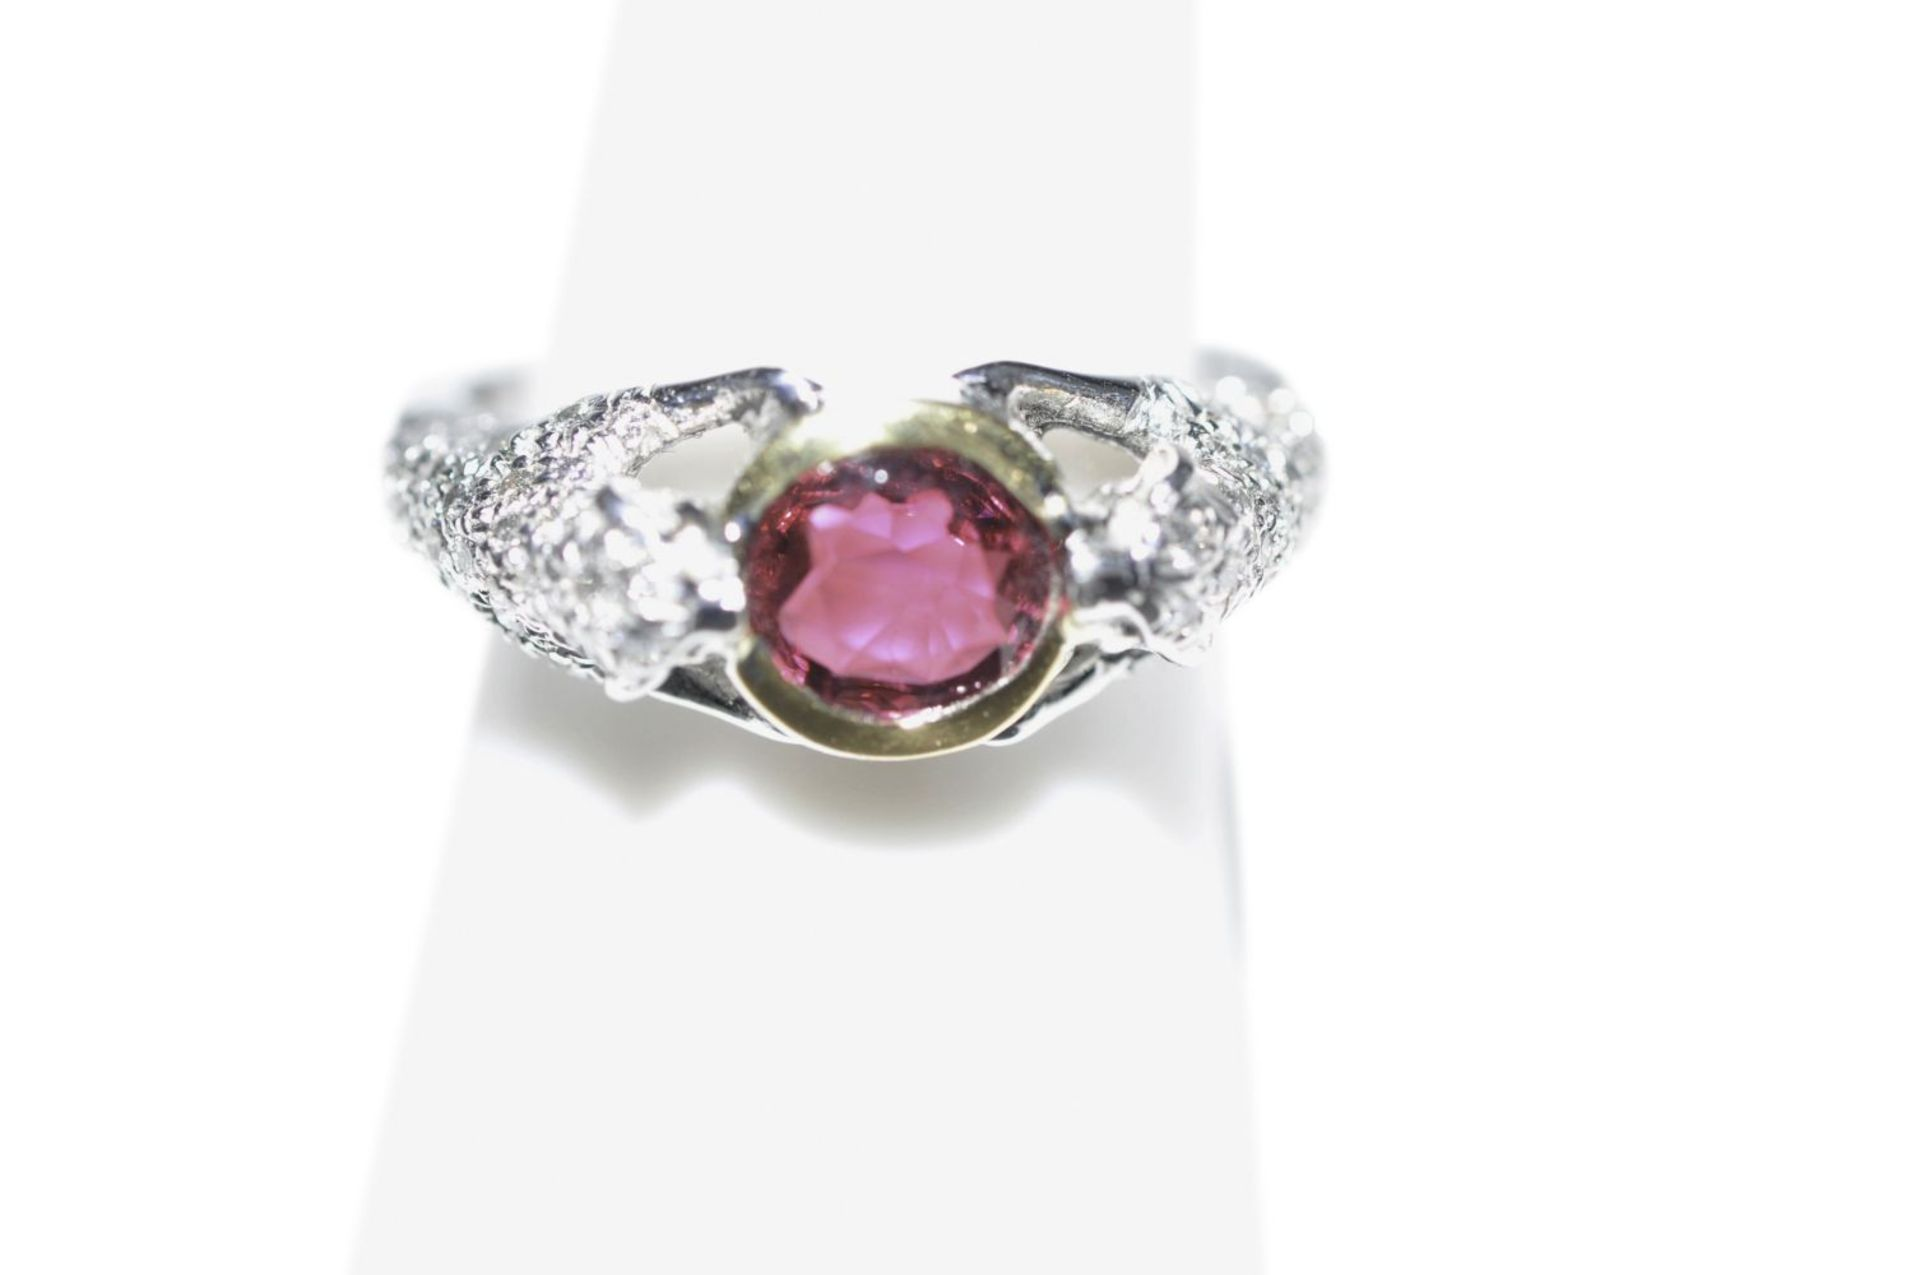 Los 93 - Brilliant ring with tourmaline18kt white gold ring with diamonds, approx. 0.39ct and a tourmaline,